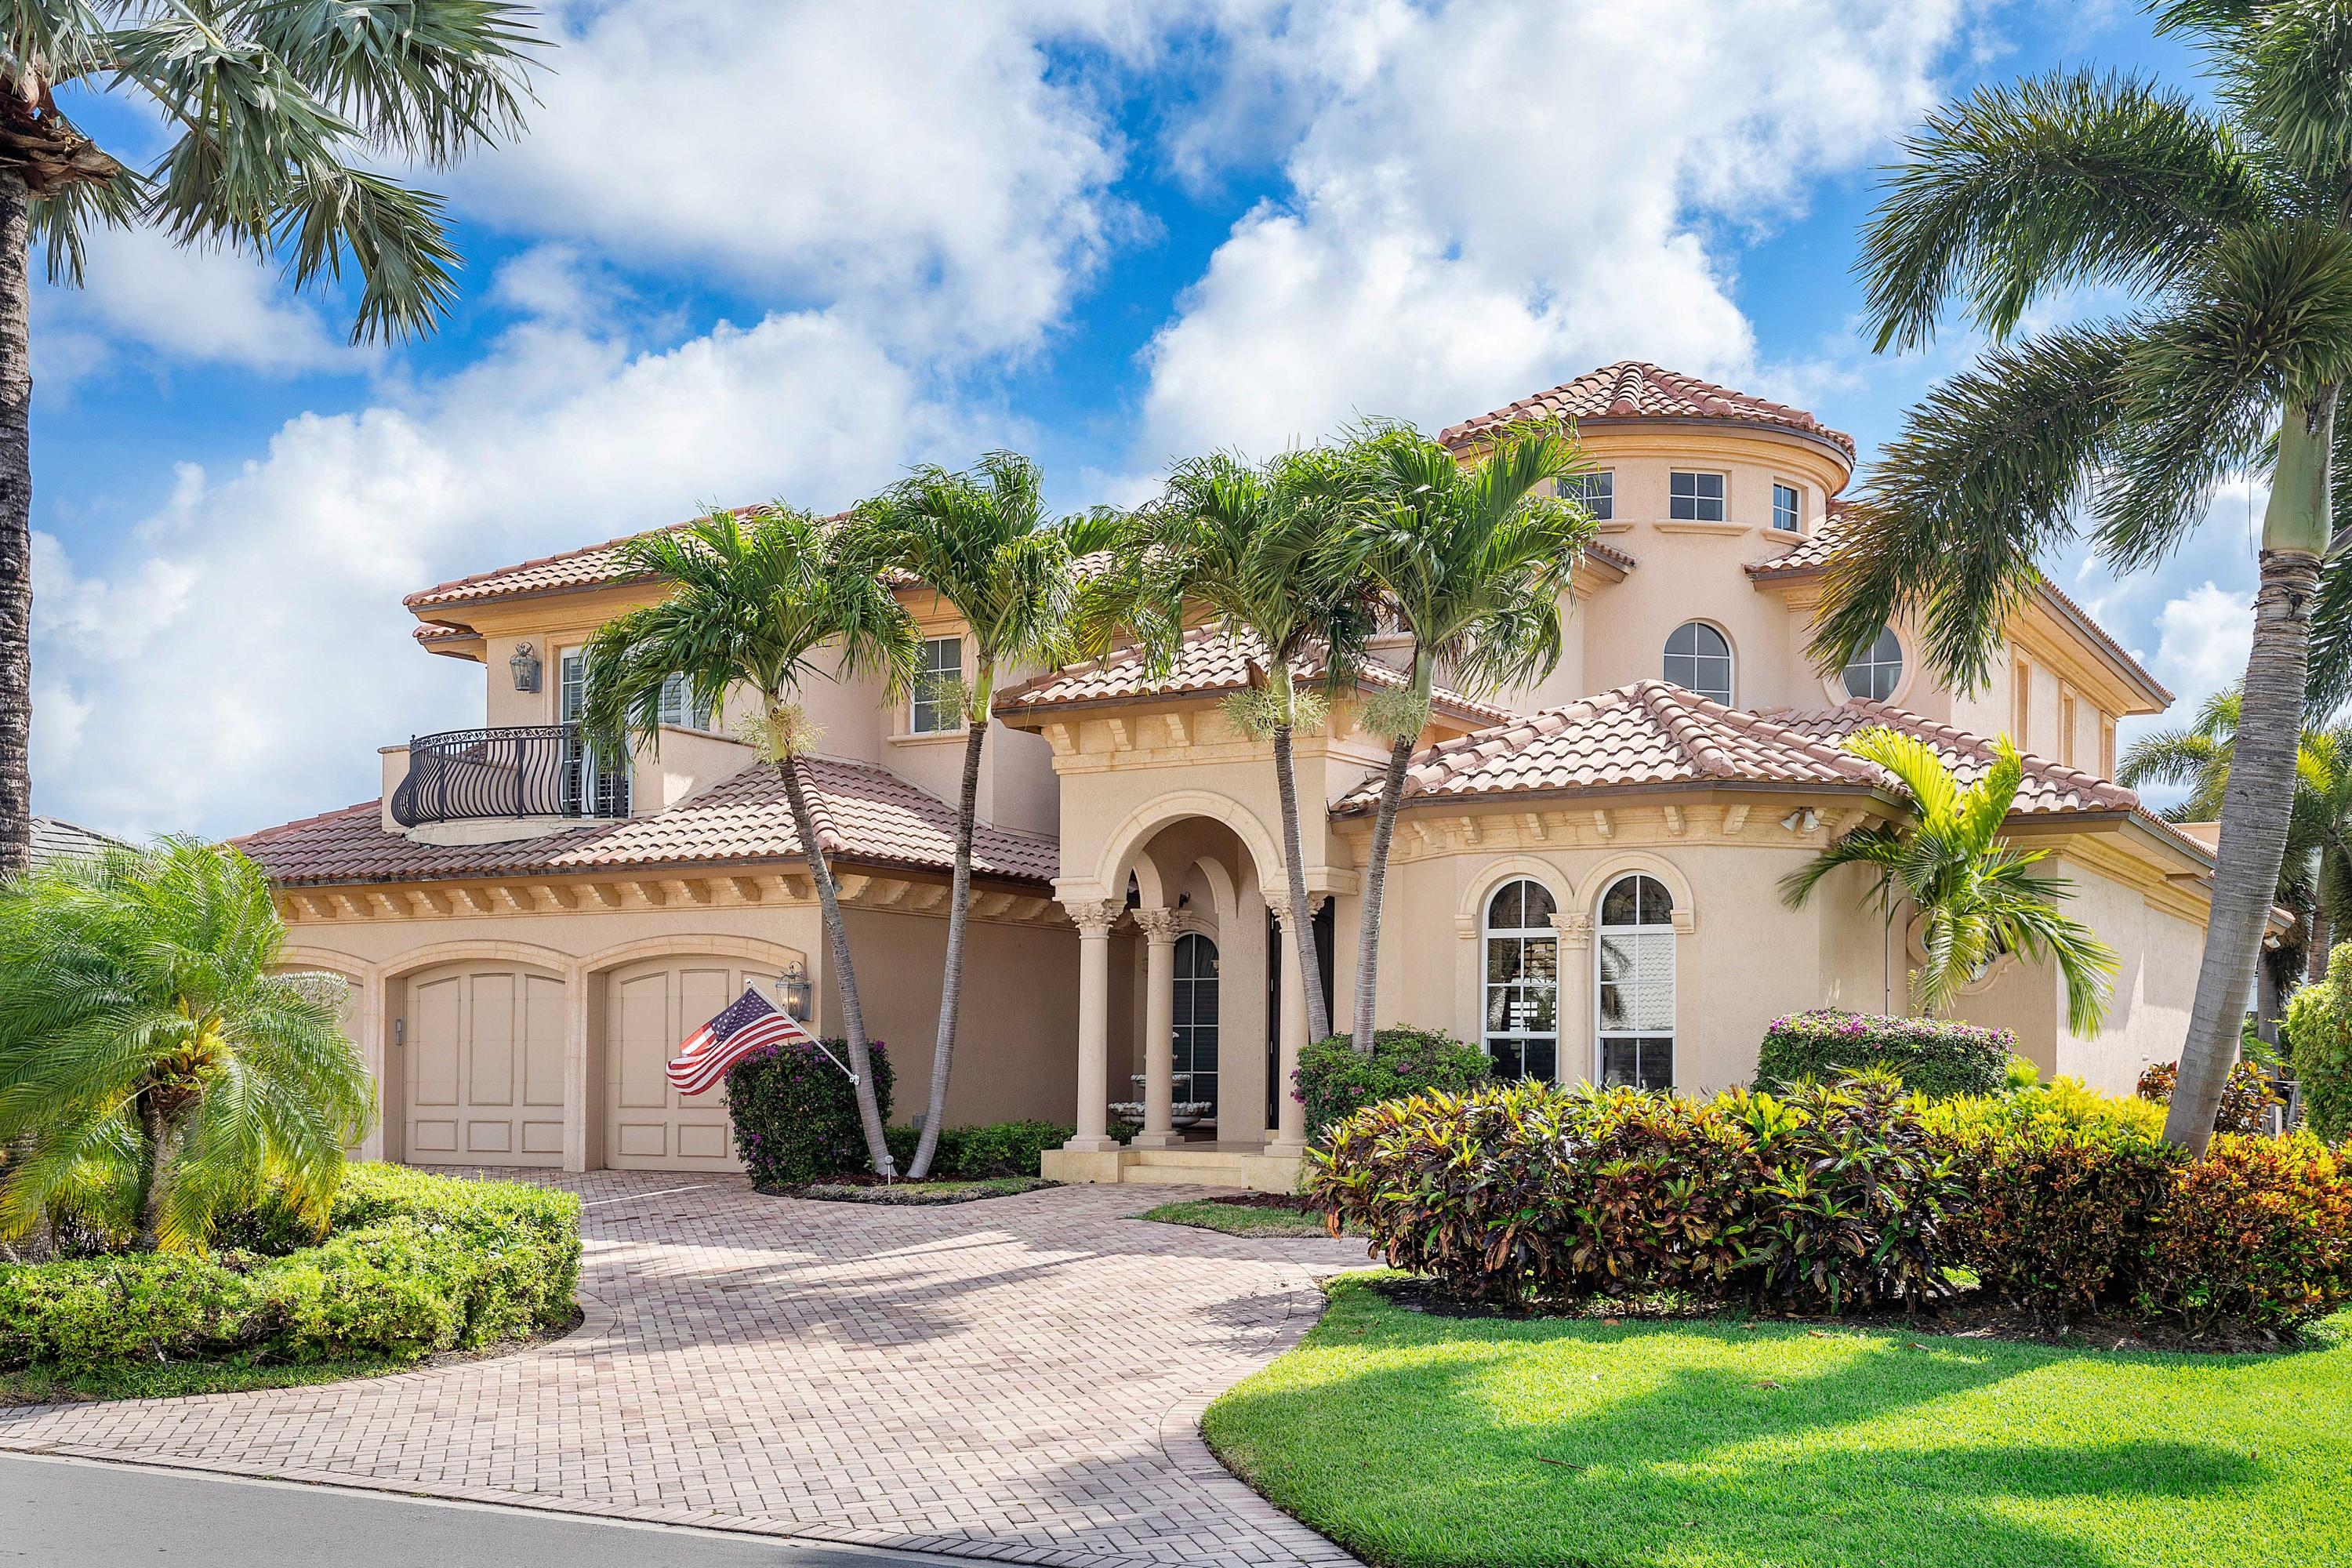 2404  Date Palm Road  For Sale 10713937, FL